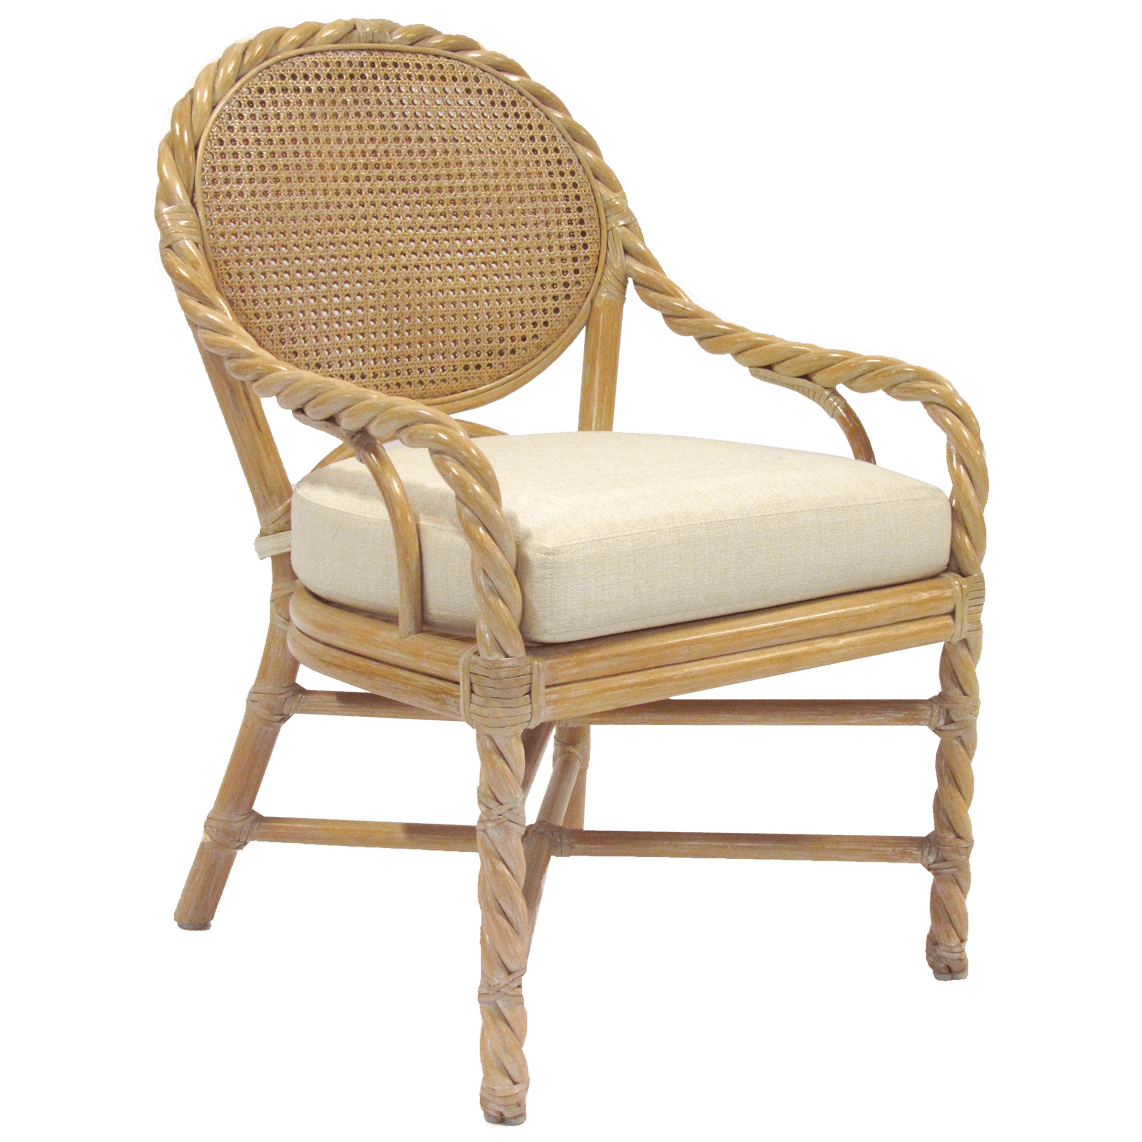 Rattan Chairs Twisted Rattan Arm Chair Kdrshowrooms